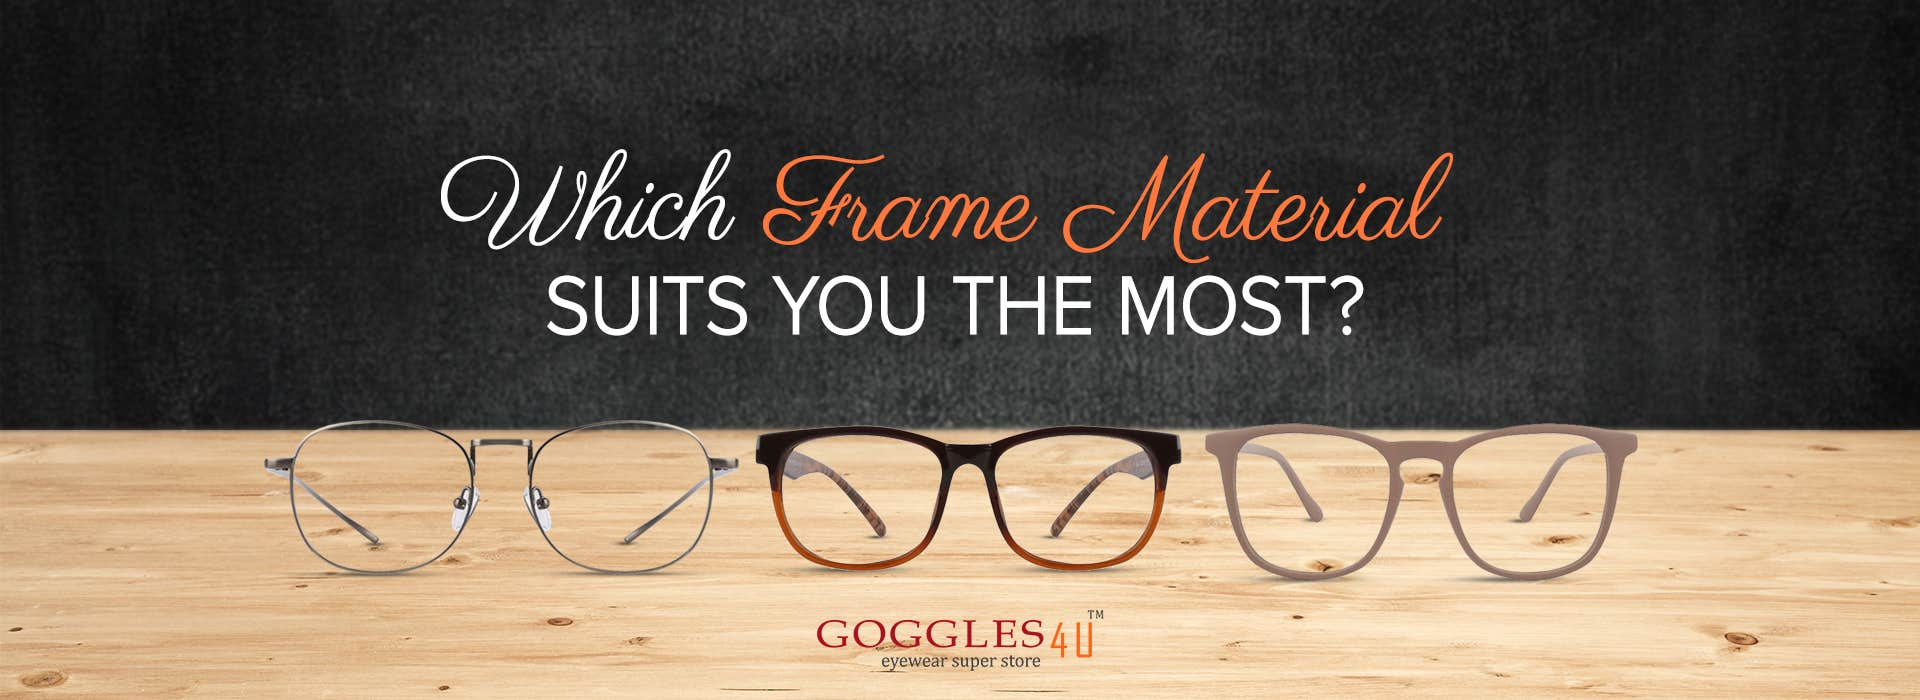 Which Frame Material Suits You The Most